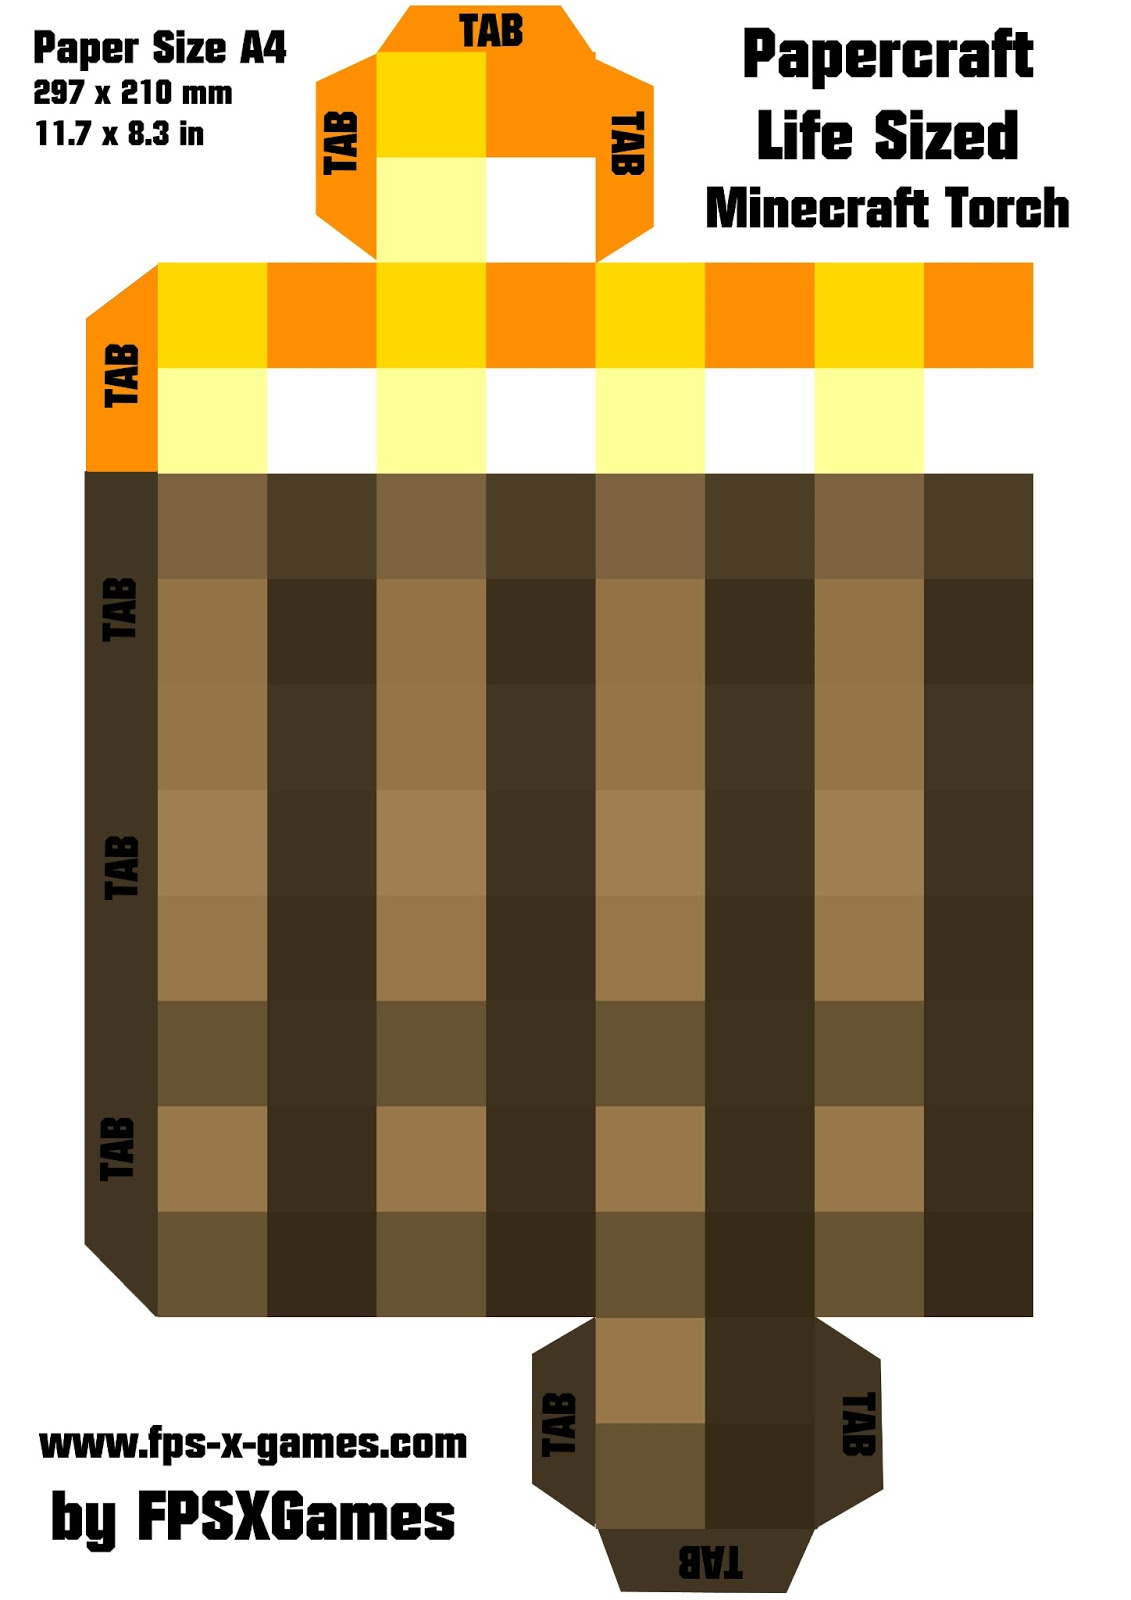 minecraft cut out templates - printable papercraft cut out minecraft life sized torch